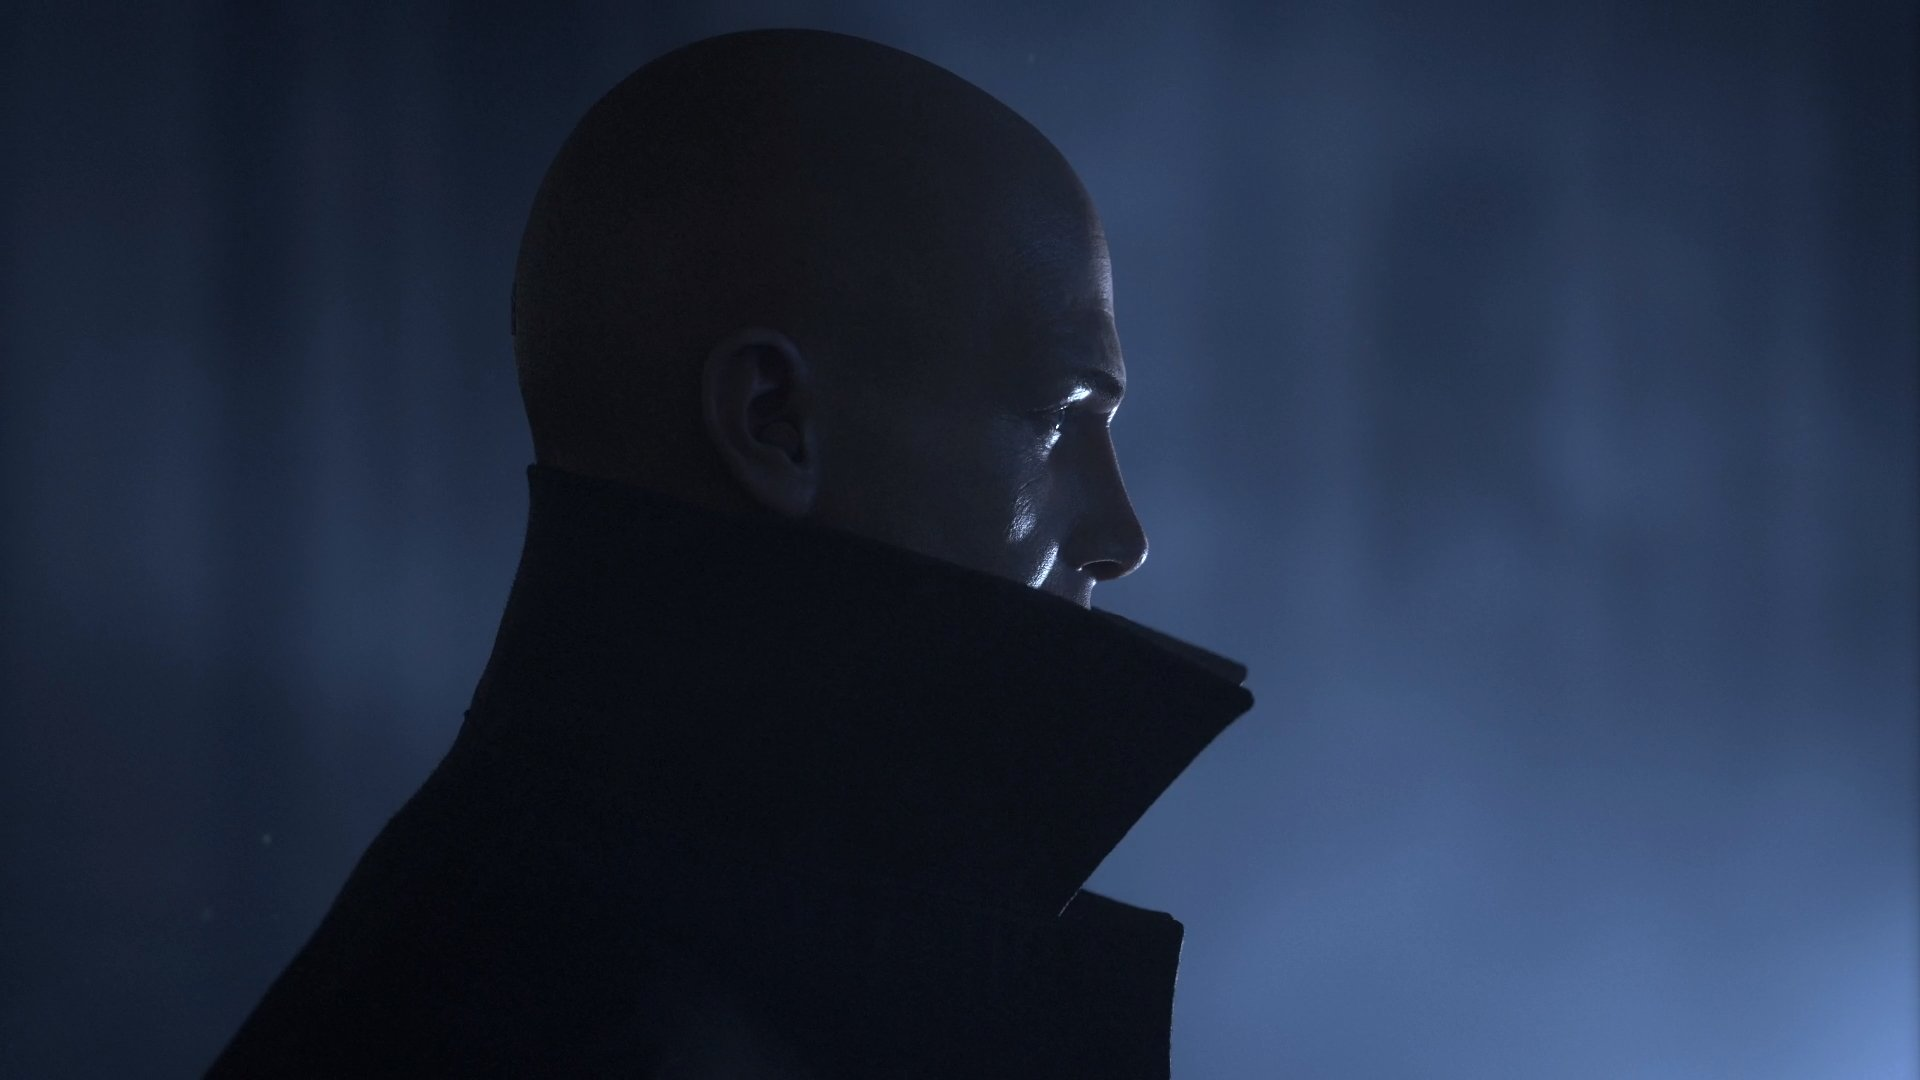 Hitman 3 sneaking onto PS5 in January 2021   AllGamers